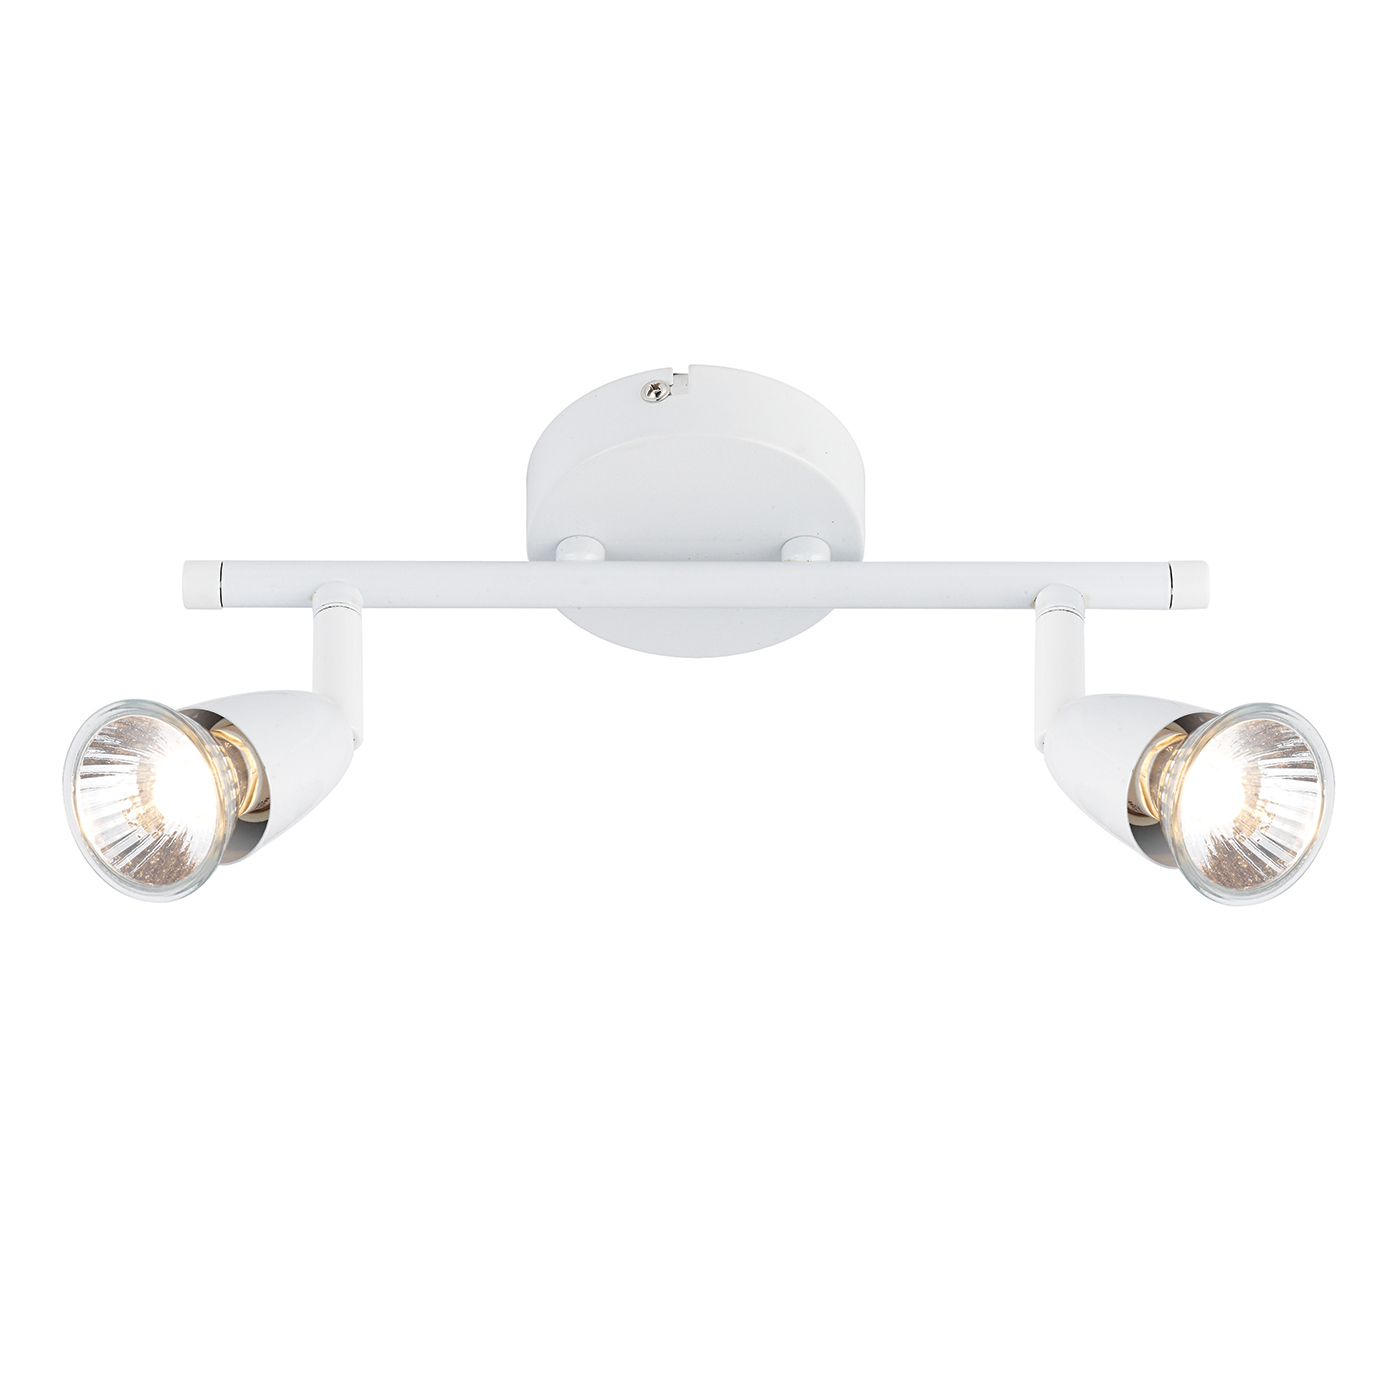 Endon Amalfi ceiling spotlight bar 2x 50W Gloss white Thumbnail 1